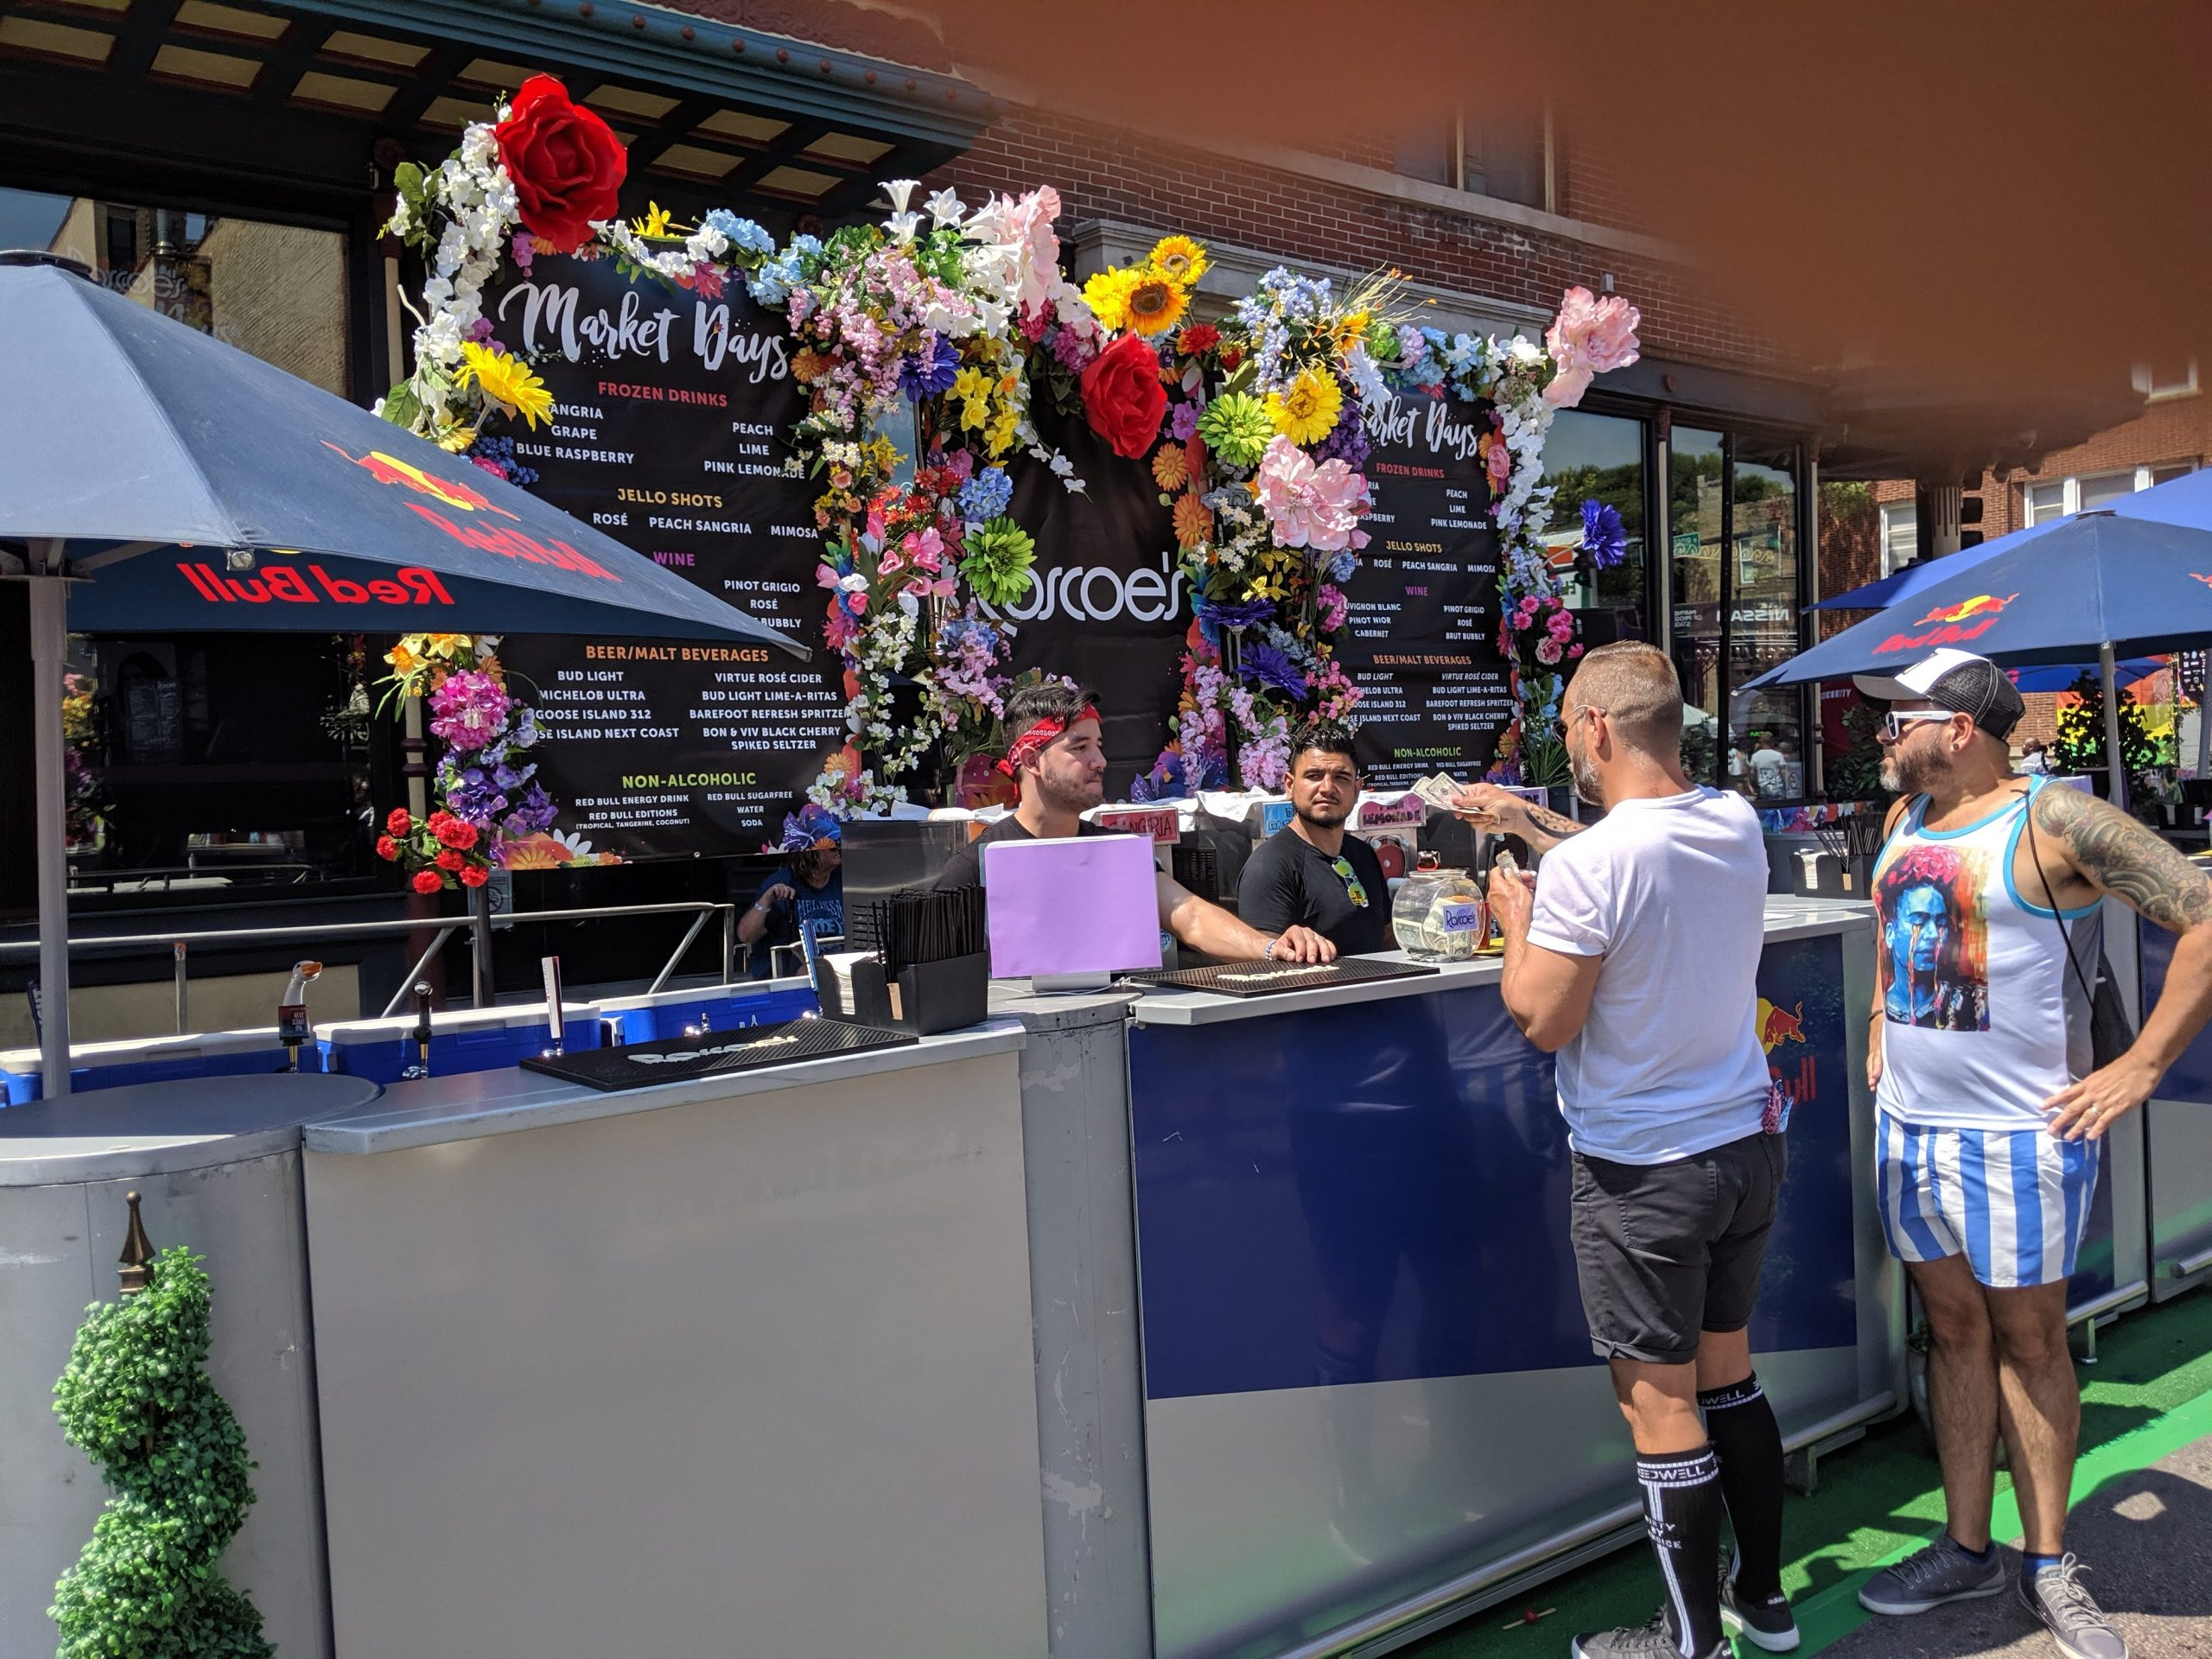 Roscoes Market Days Vendor lakeview northalsted boystown